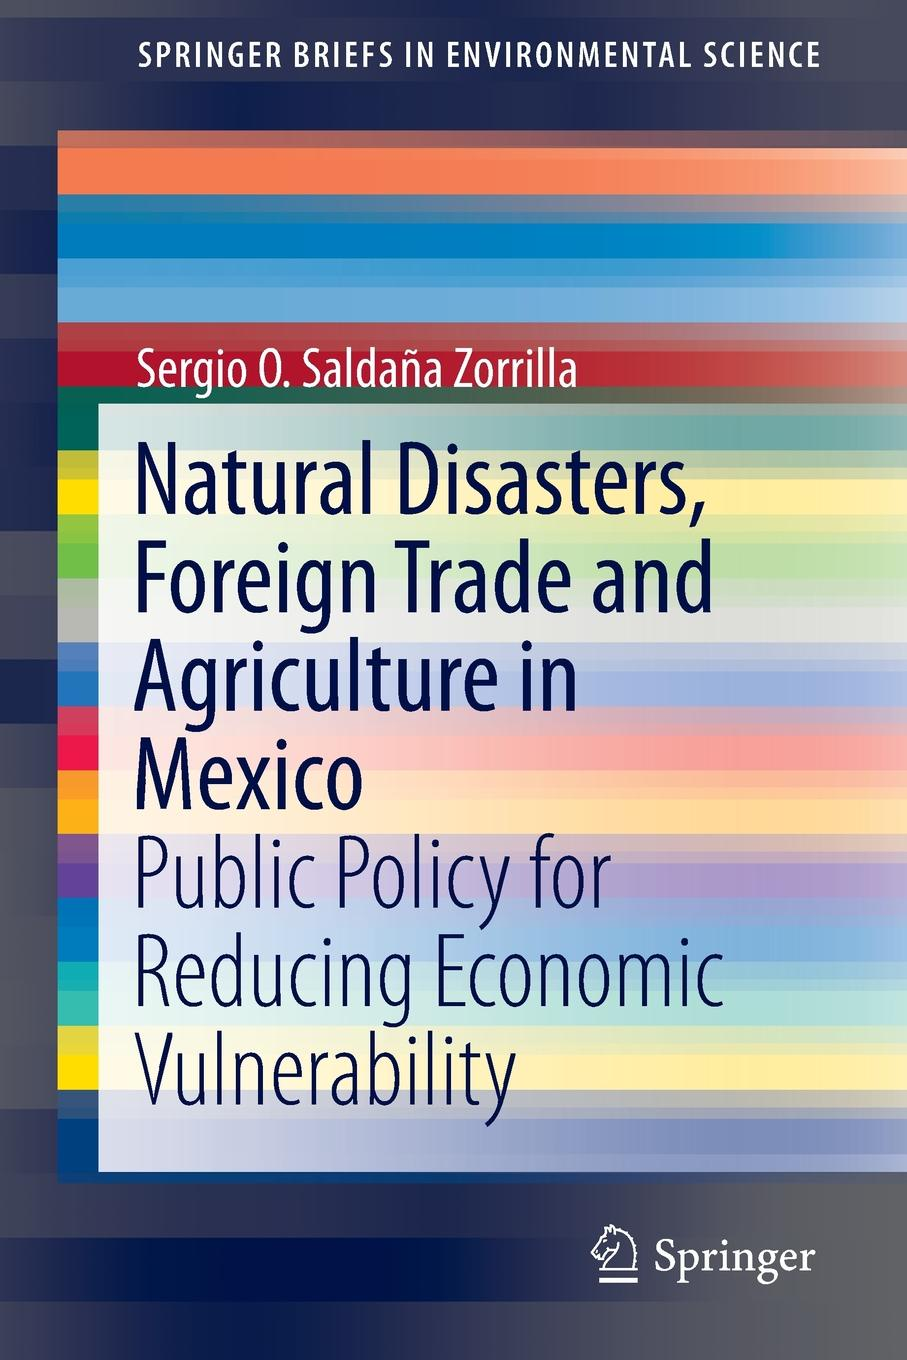 PhD Sergio O. Saldaña Zorrilla Natural Disasters, Foreign Trade and Agriculture in Mexico. Public Policy for Reducing Economic Vulnerability international trade and agriculture